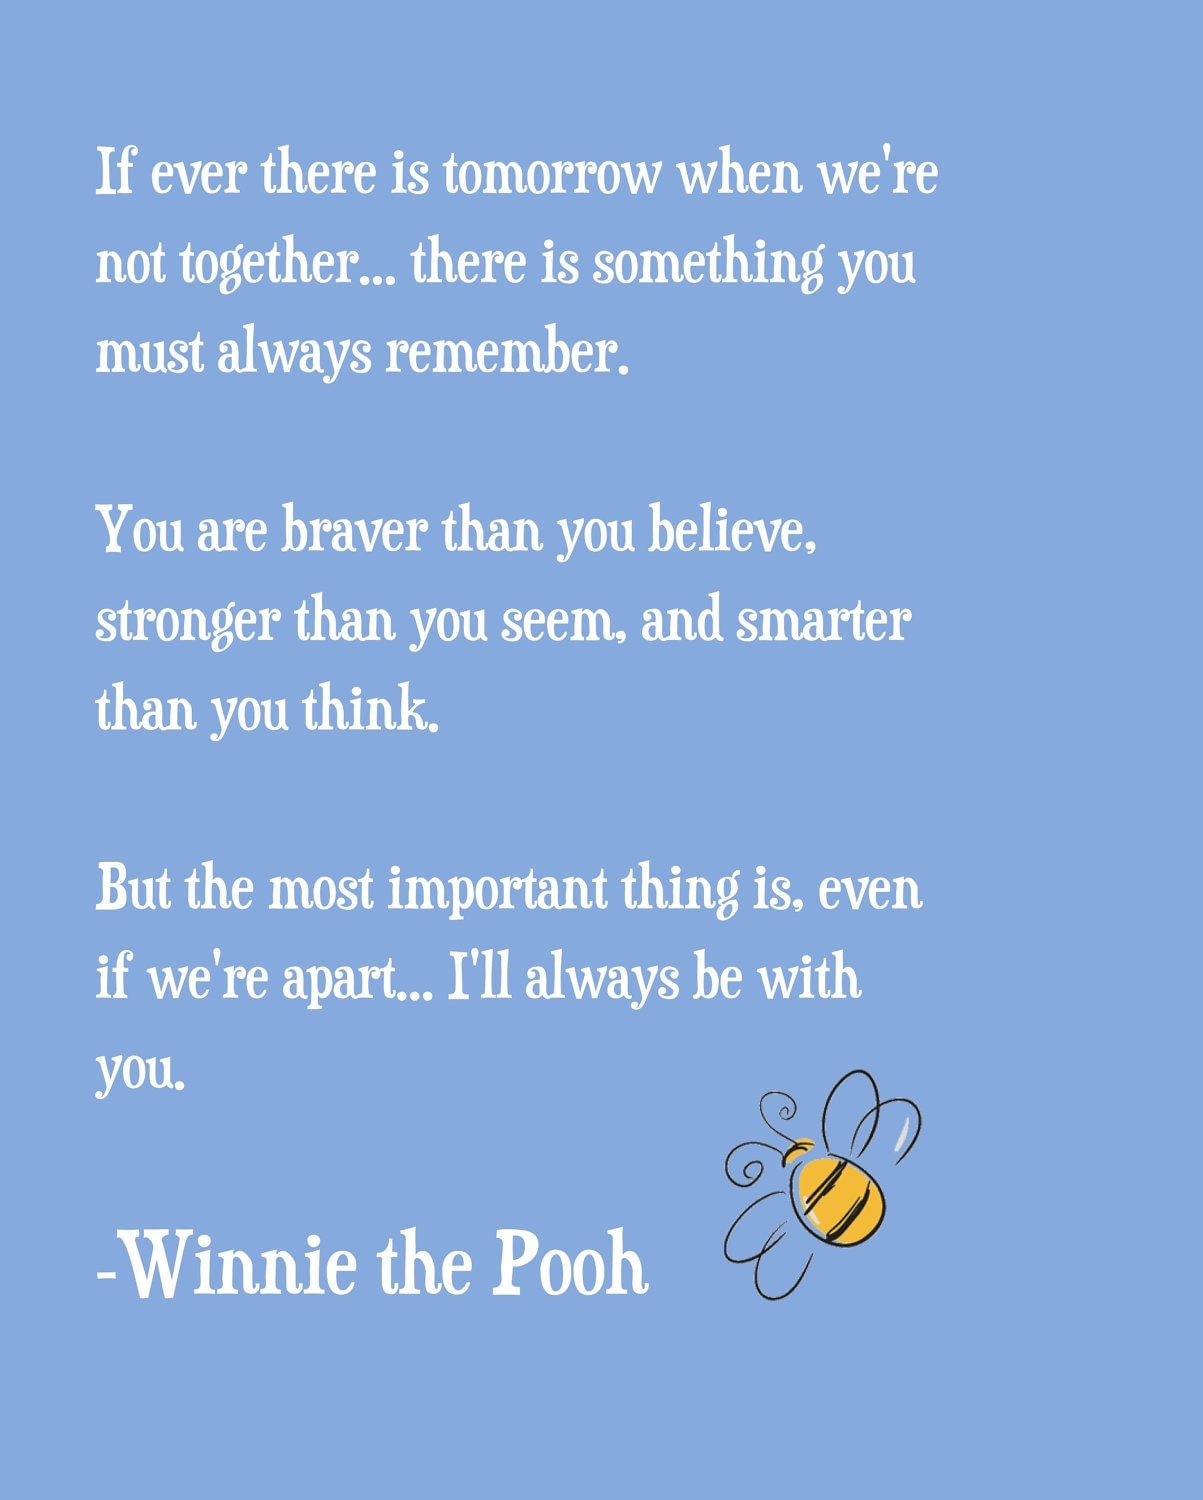 Pooh Love Quotes Quotes Best Friends Winnie Pooh Aww Goodnight Ig Igers Quotes